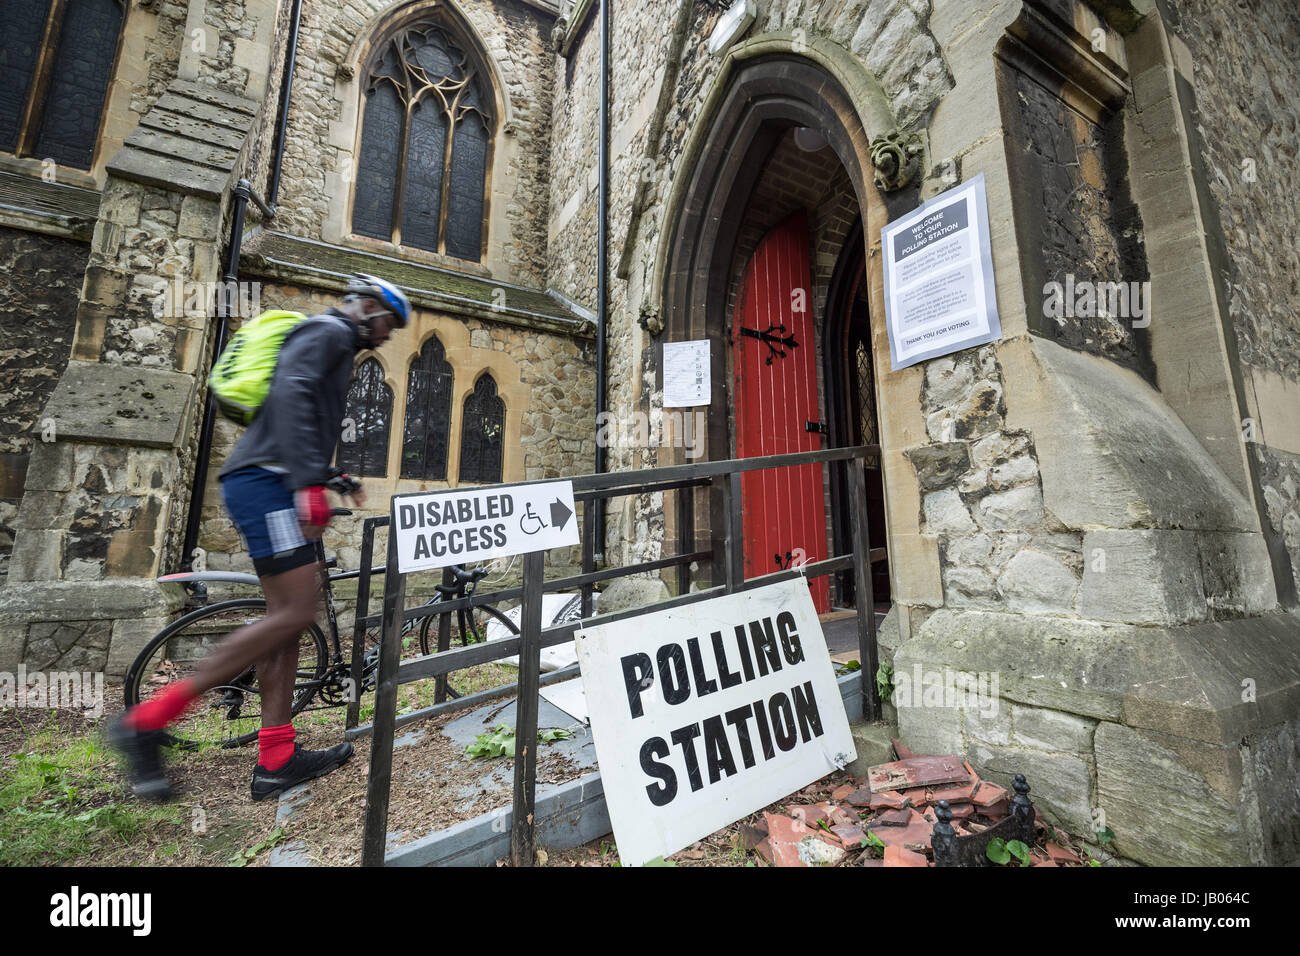 London, UK. 8th June, 2017. Polling Station at St. Peter's Church in Brockley. General Election Polling Day in South - Stock Image